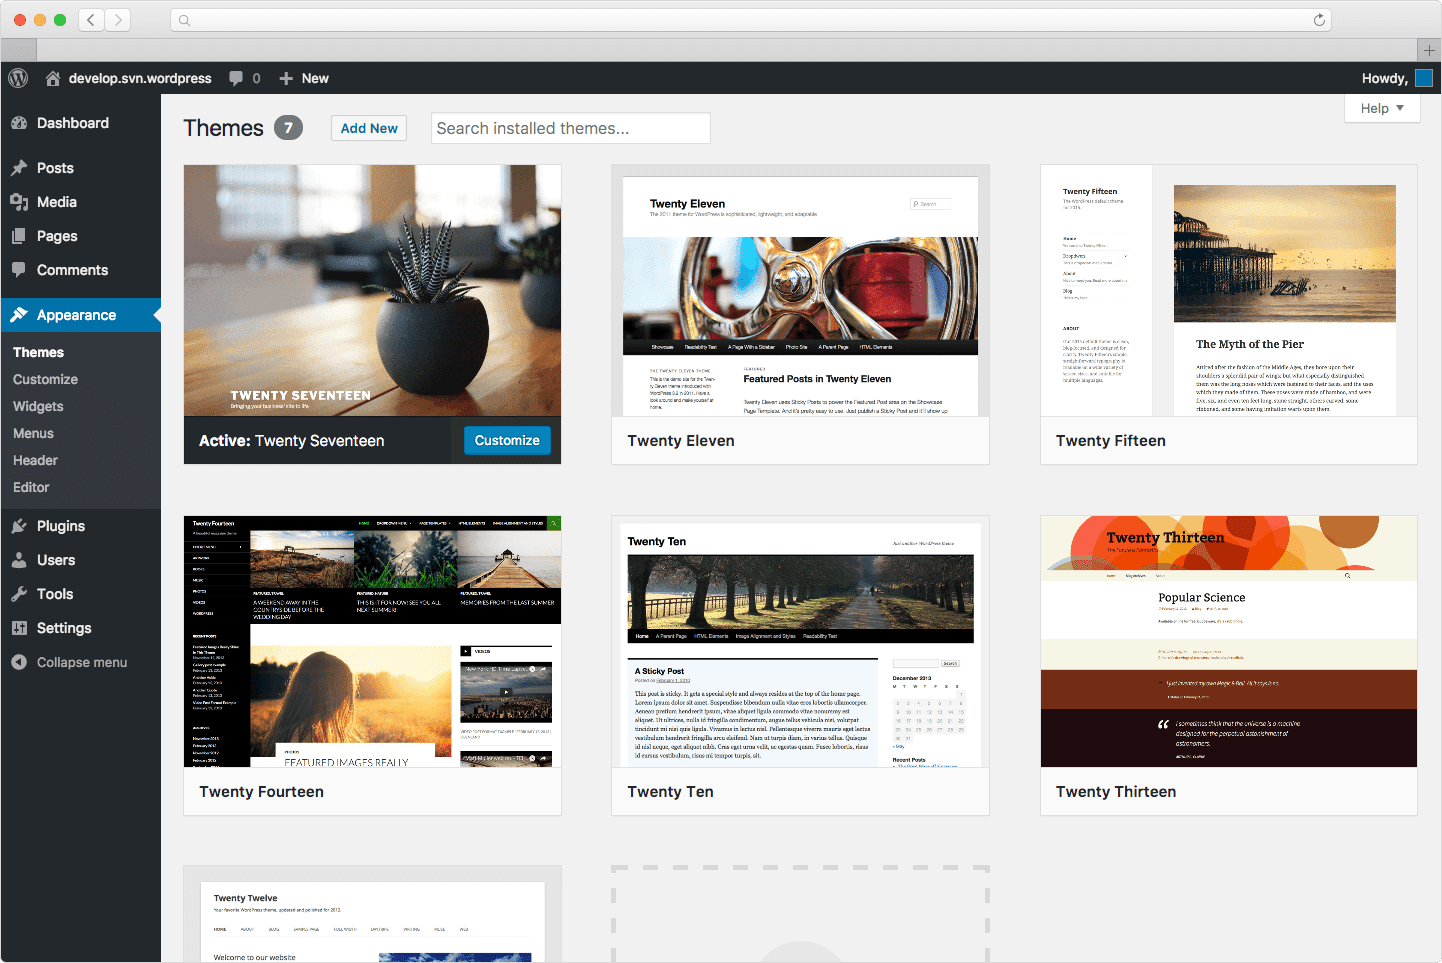 Techniques to create an effective landing page